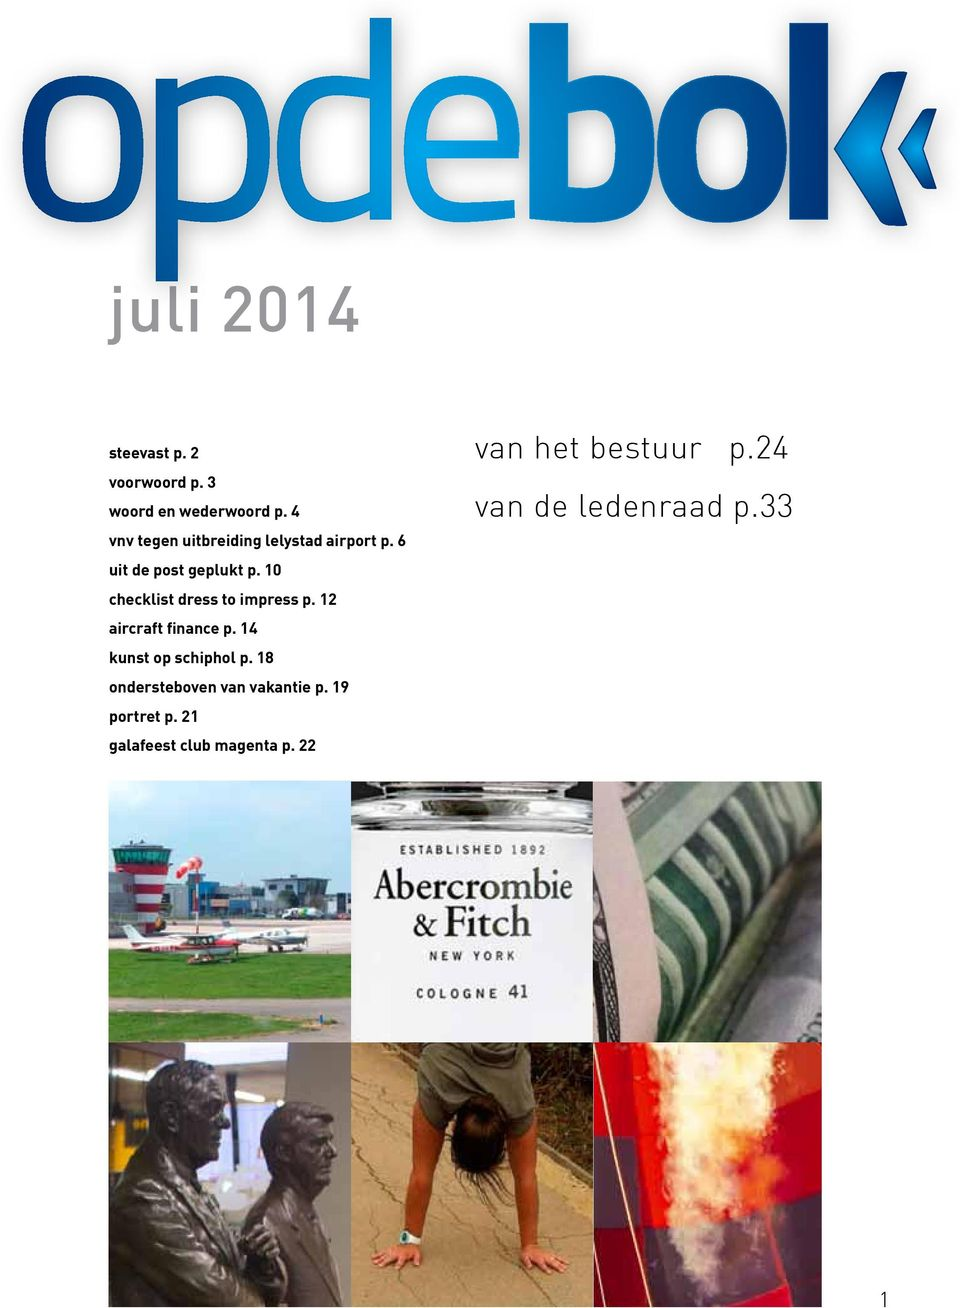 10 checklist dress to impress p. 12 aircraft finance p. 14 kunst op schiphol p.